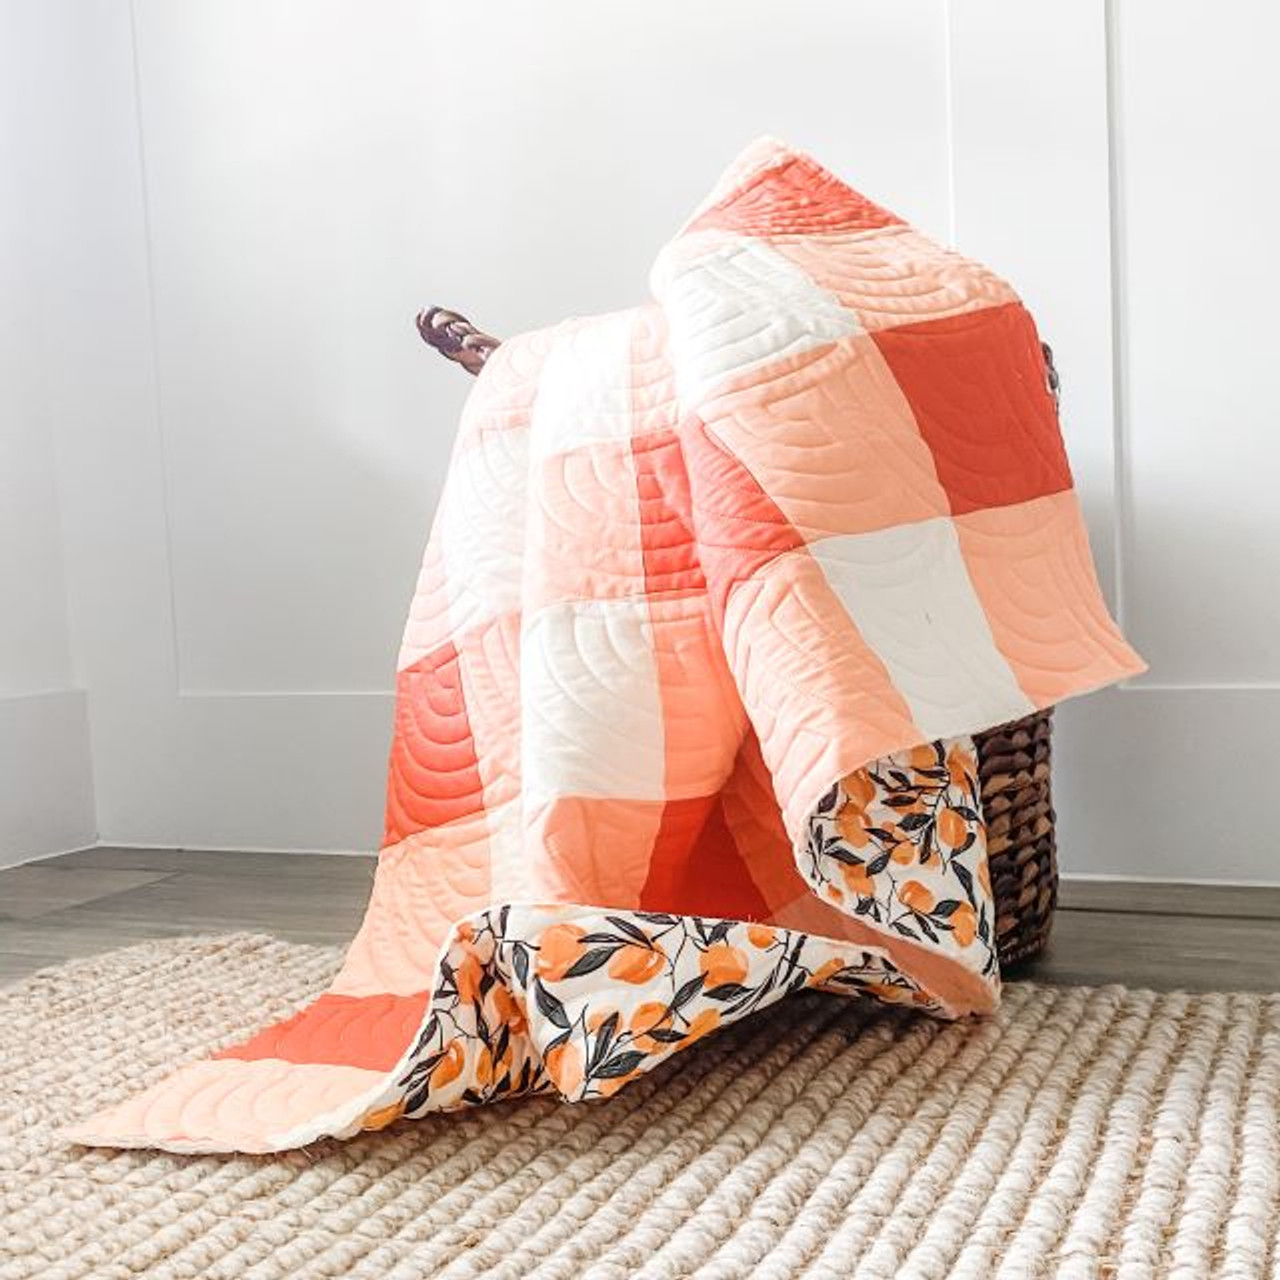 "QUILTERS CANDY, GINGHAM QUILT Kit in WARP and WEFT Ruby Star Society Orange 55"" x 65"" (140 x 165 cm)"